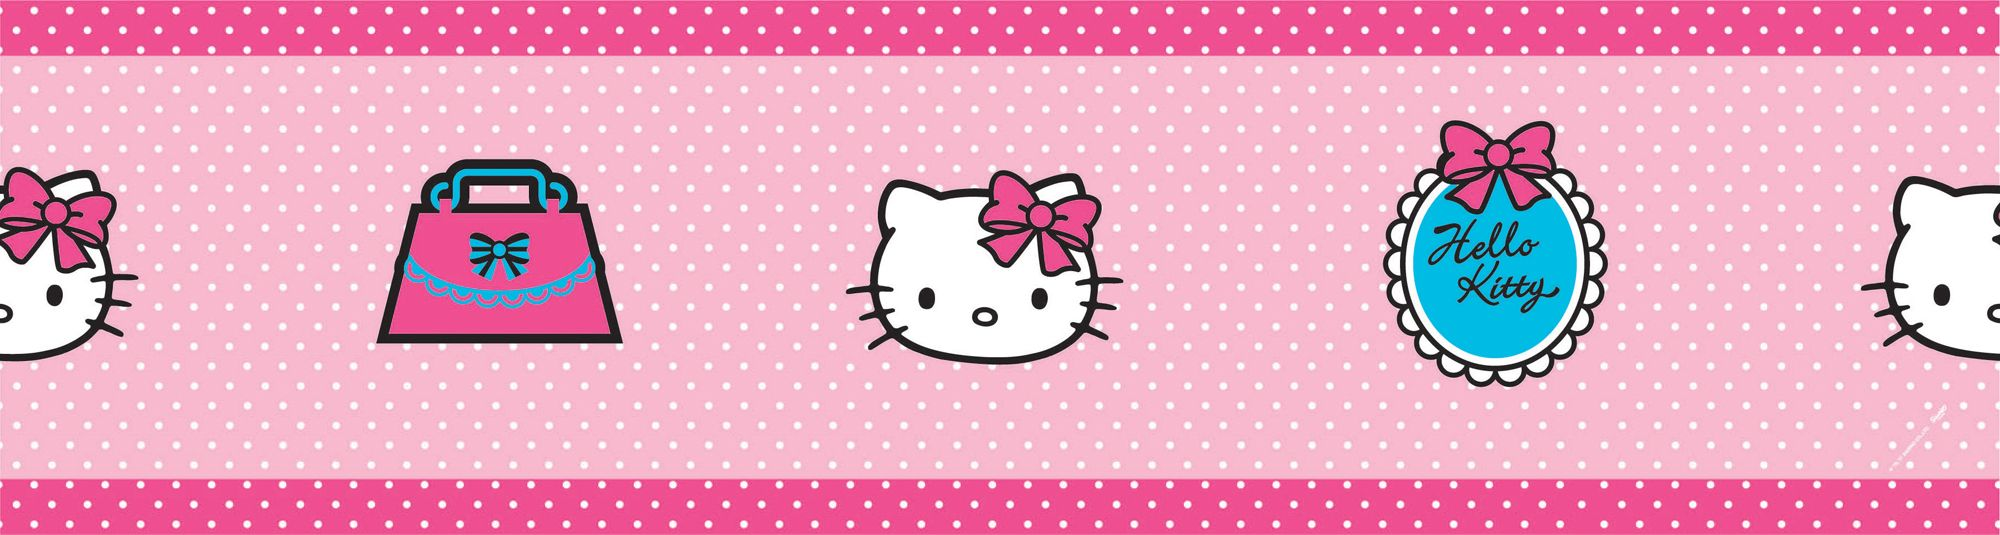 Decofun Hello Kitty Pink Border Departments Diy At B Amp Q